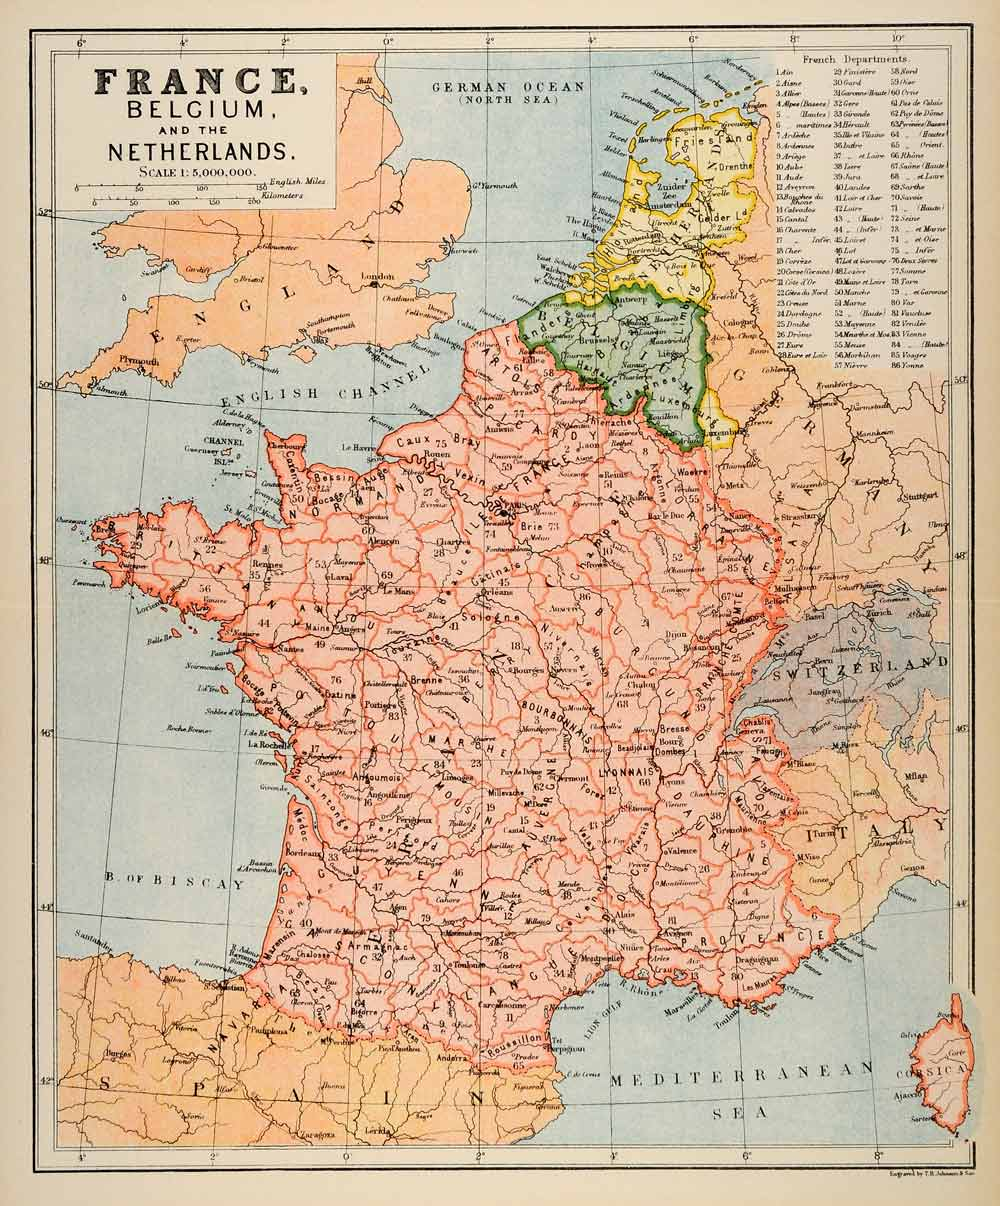 Map Of France Belgium.1882 Photolithographed Map France Belgium Netherlands Corsica Italy Germany Xgs6